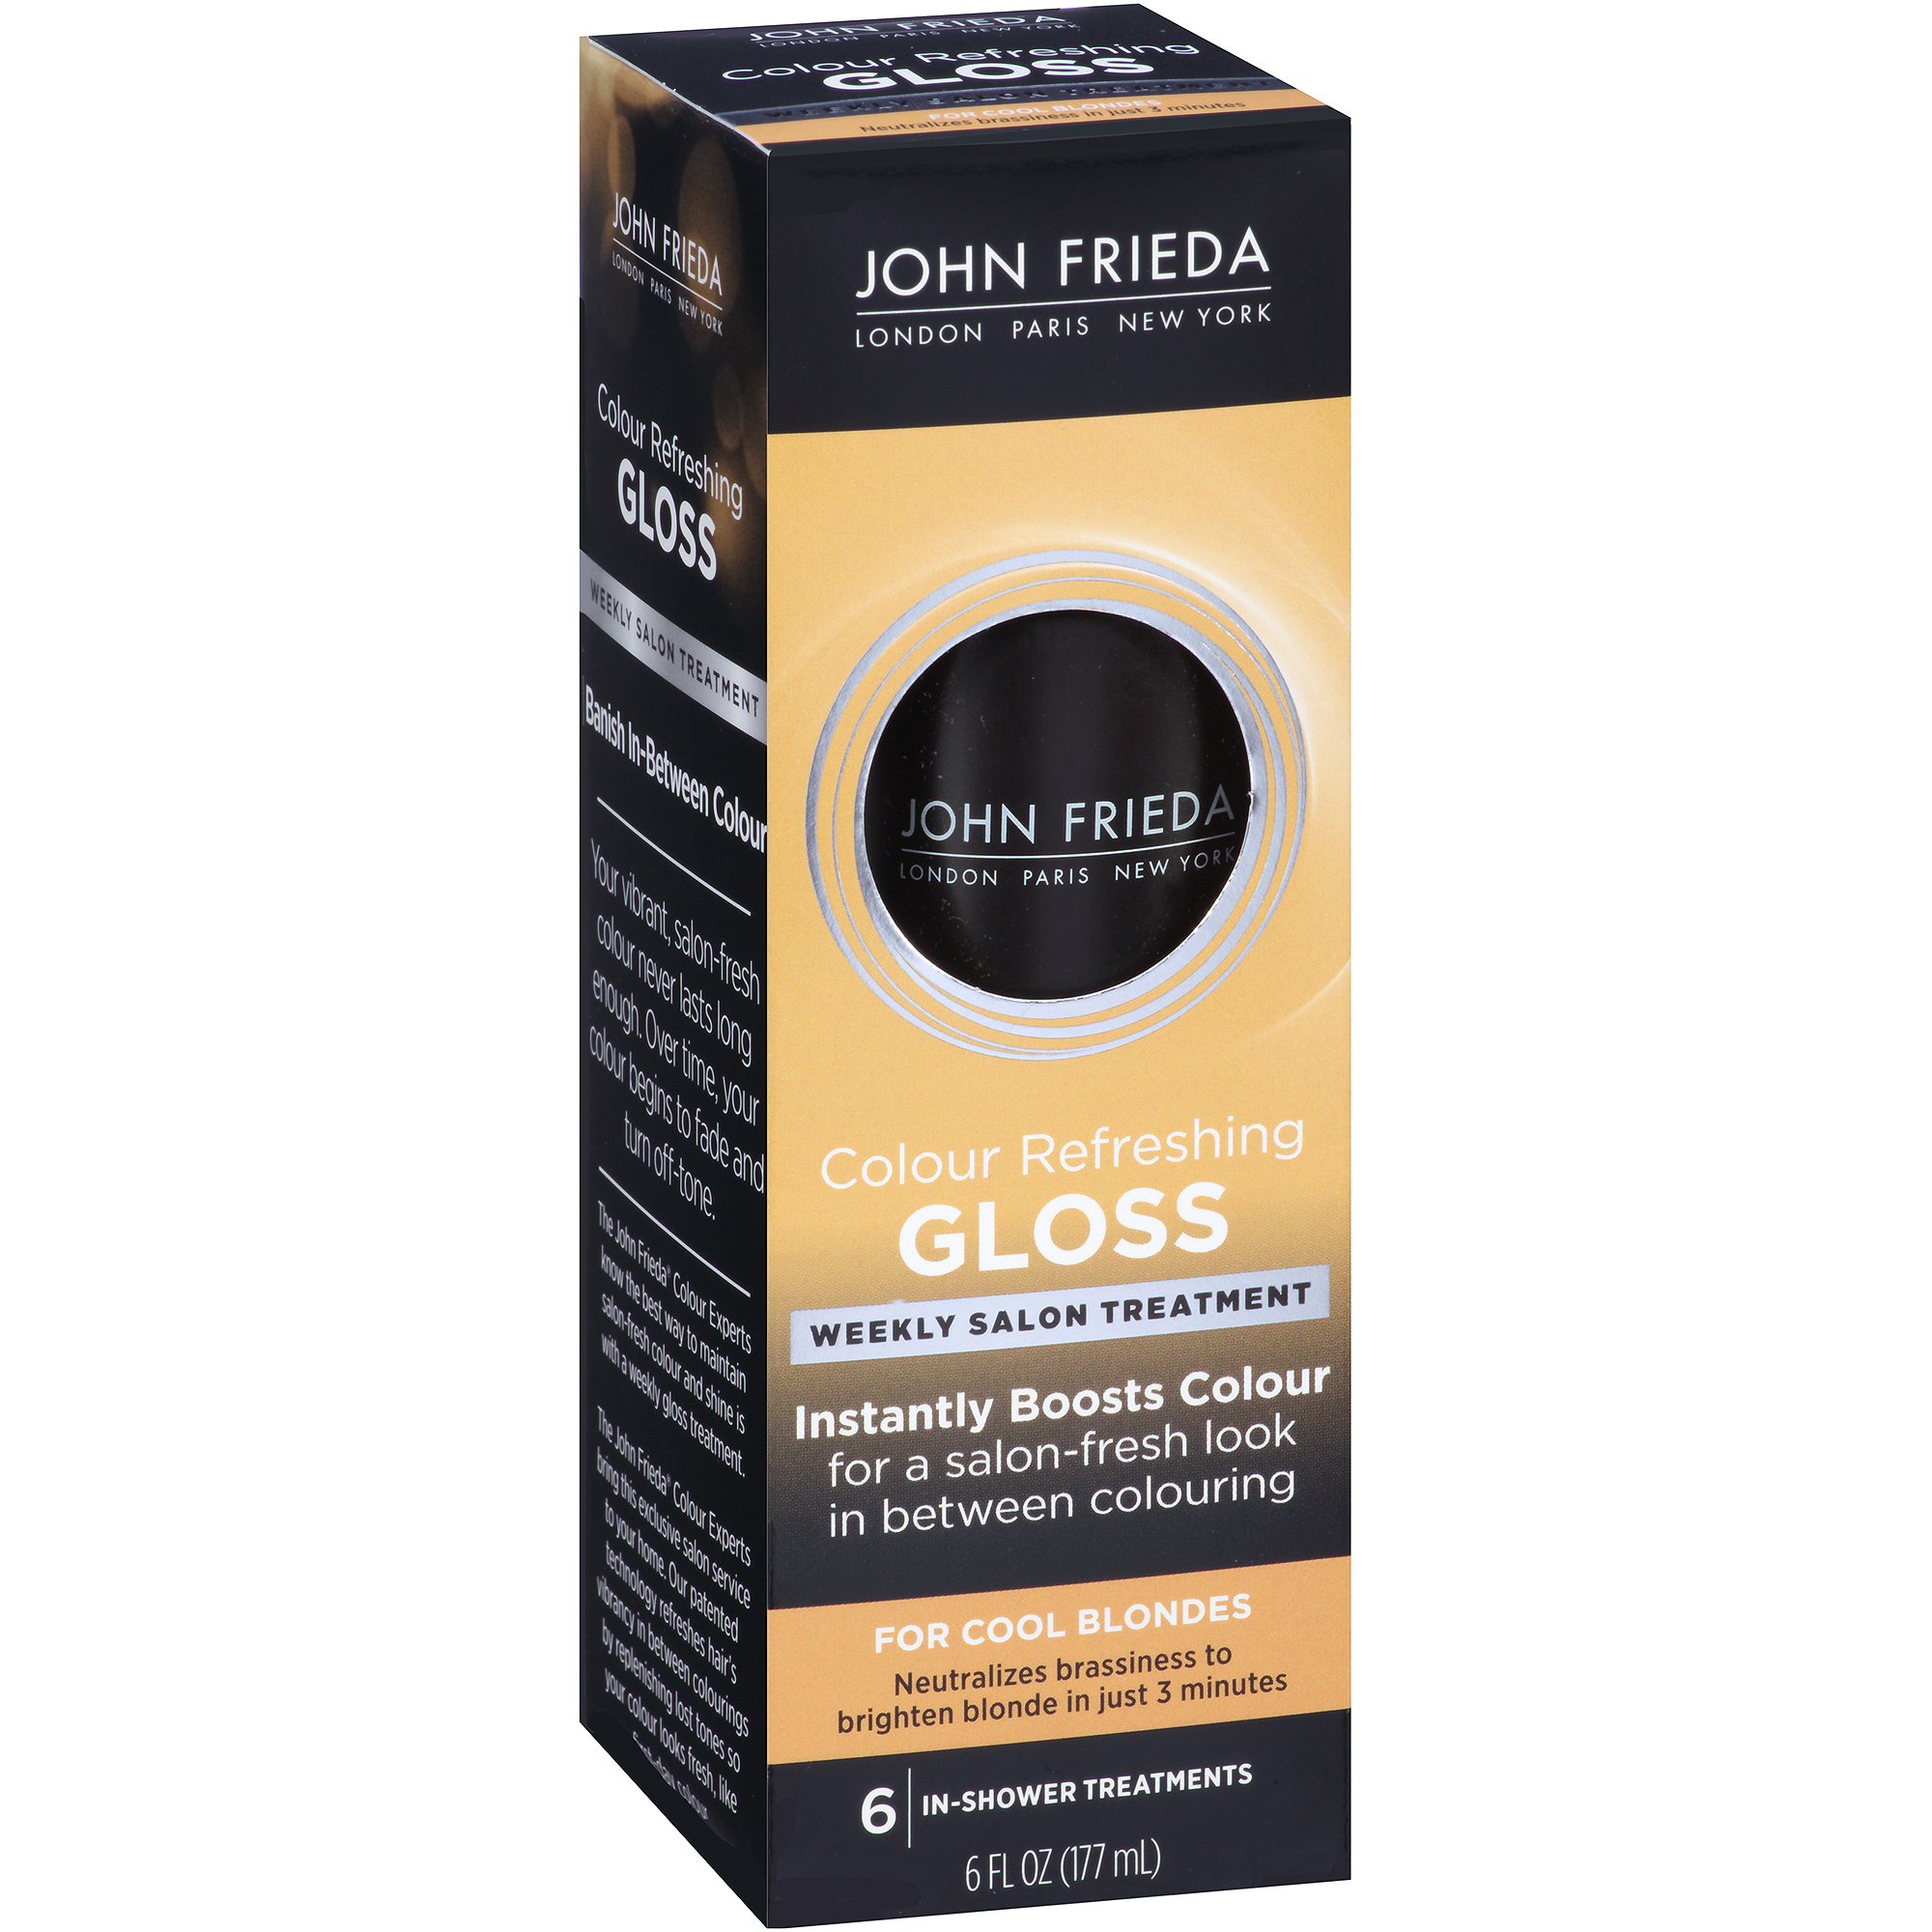 John Frieda Colour Refreshing Gloss for Cool Blondes, 6 fl oz